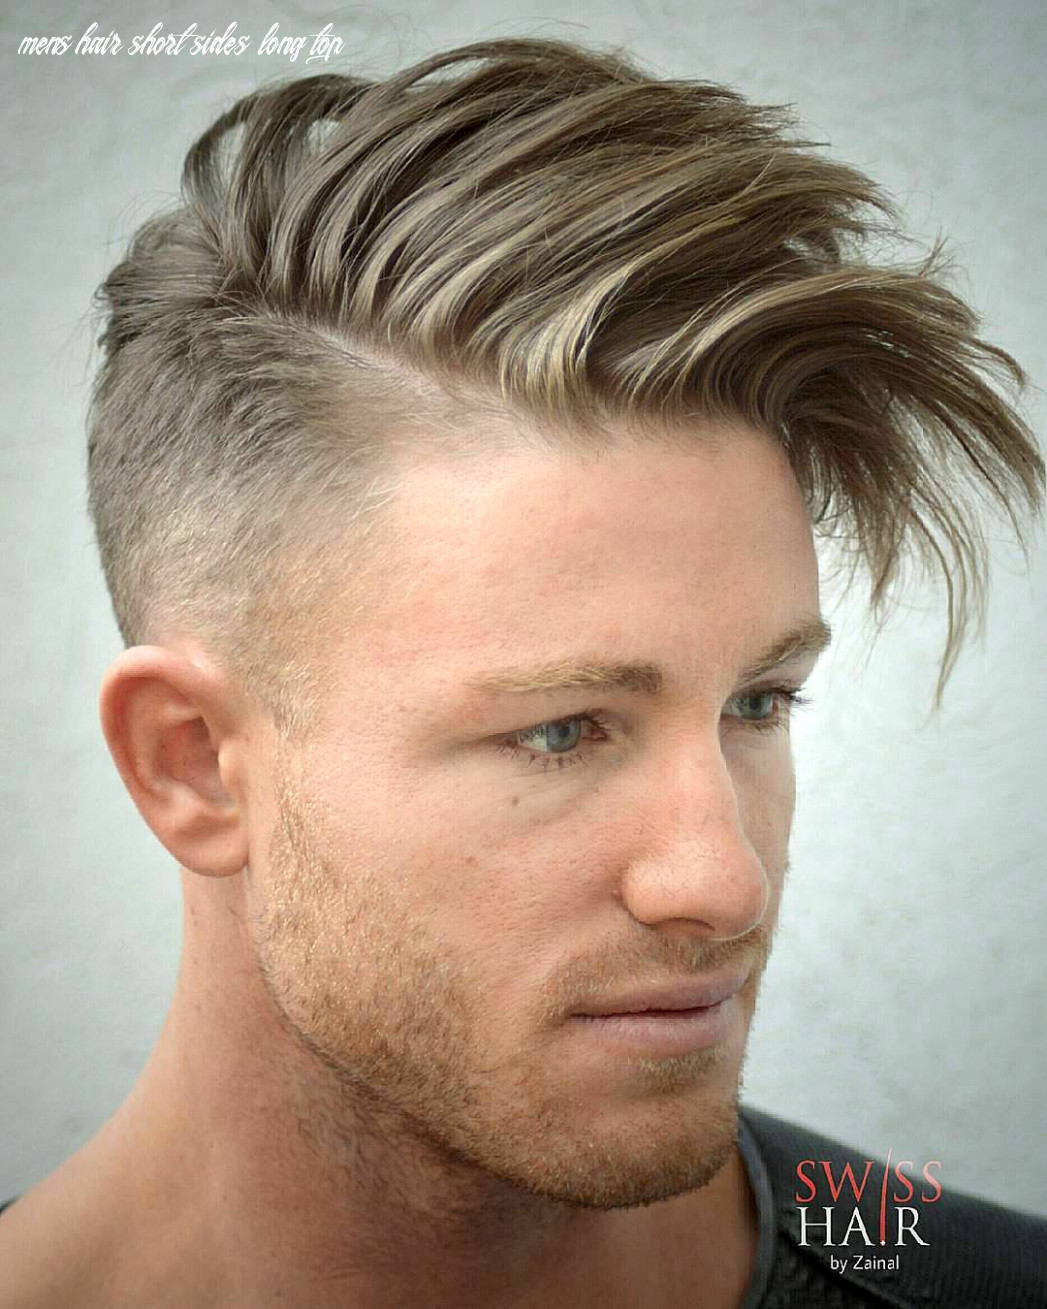 Long hair hairstyles for men: 12 cool haircut styles for 1212 mens hair short sides long top